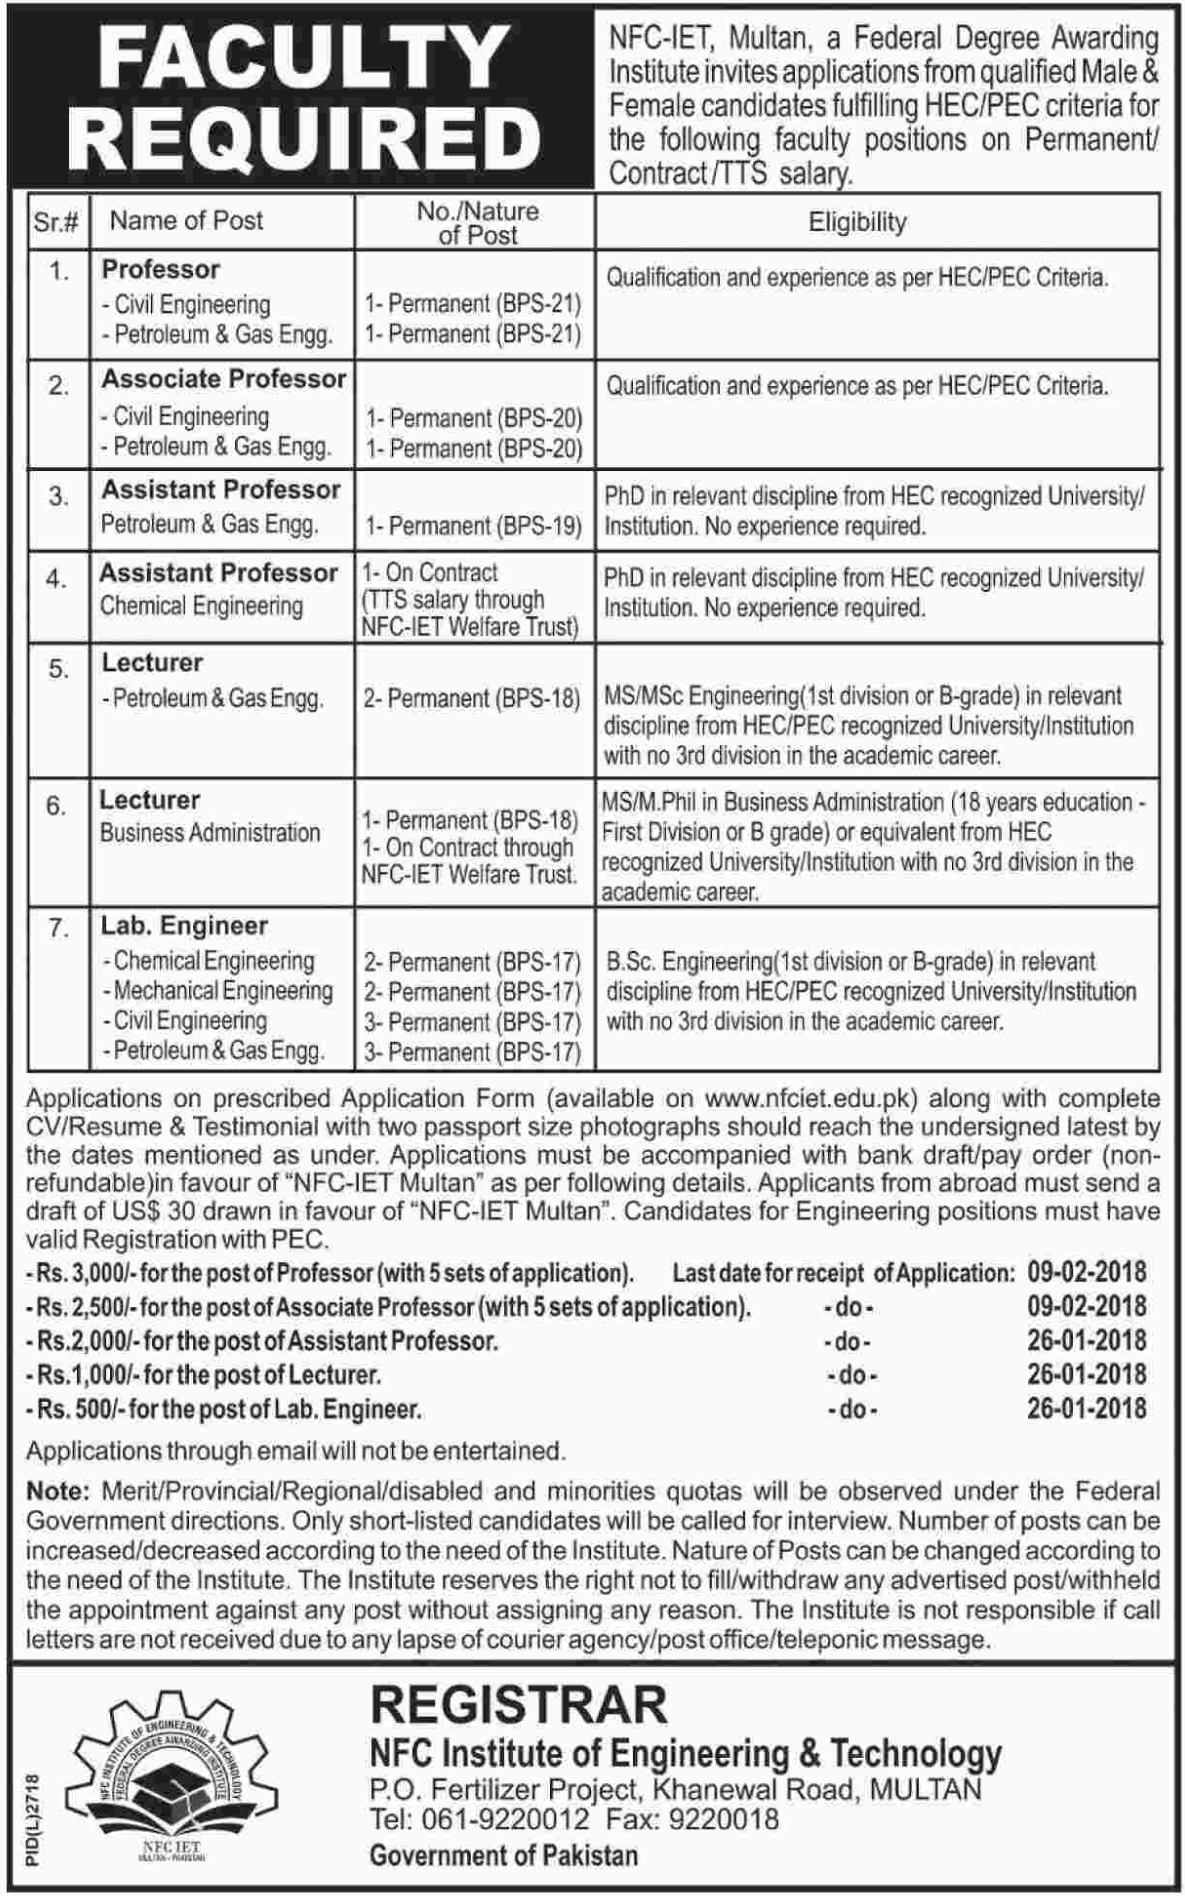 NFC Institute of Engineering & Technology Faculty Required